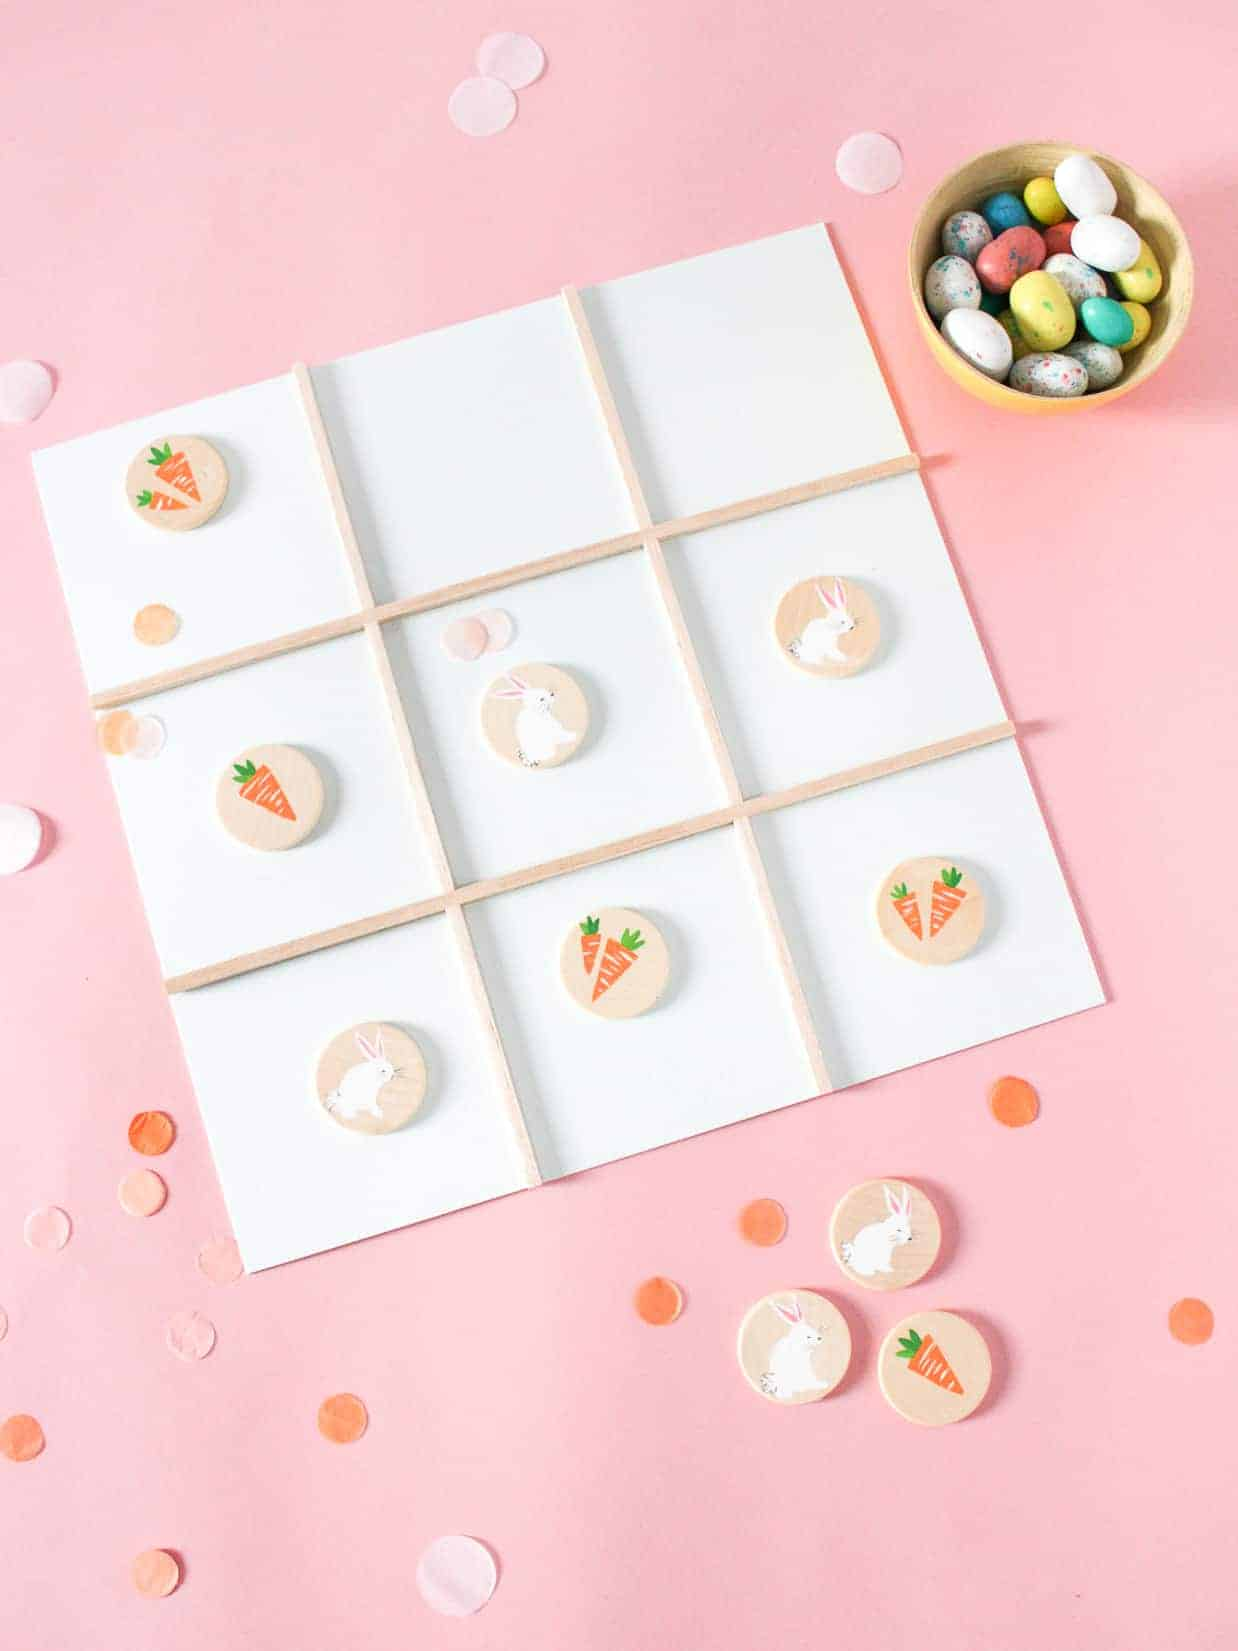 DIY Tic Tac Toe Game Board | Fish & Bull